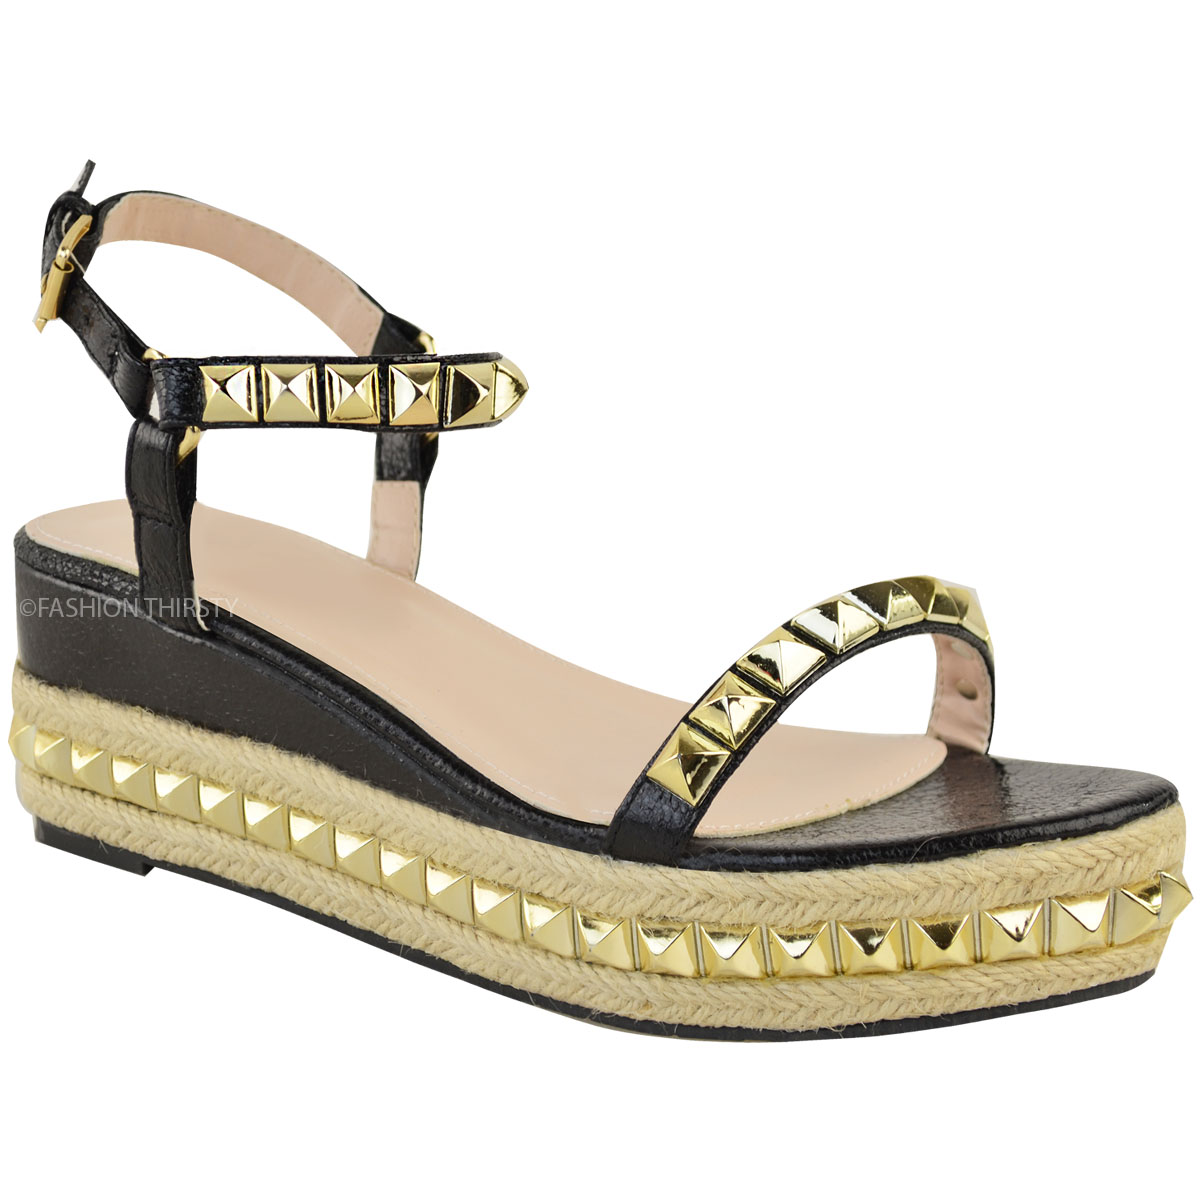 Ladies-Womens-Studded-Low-Wedge-Espadrille-Sandals-Platform-Rose-Gold-Shoes-Size thumbnail 13